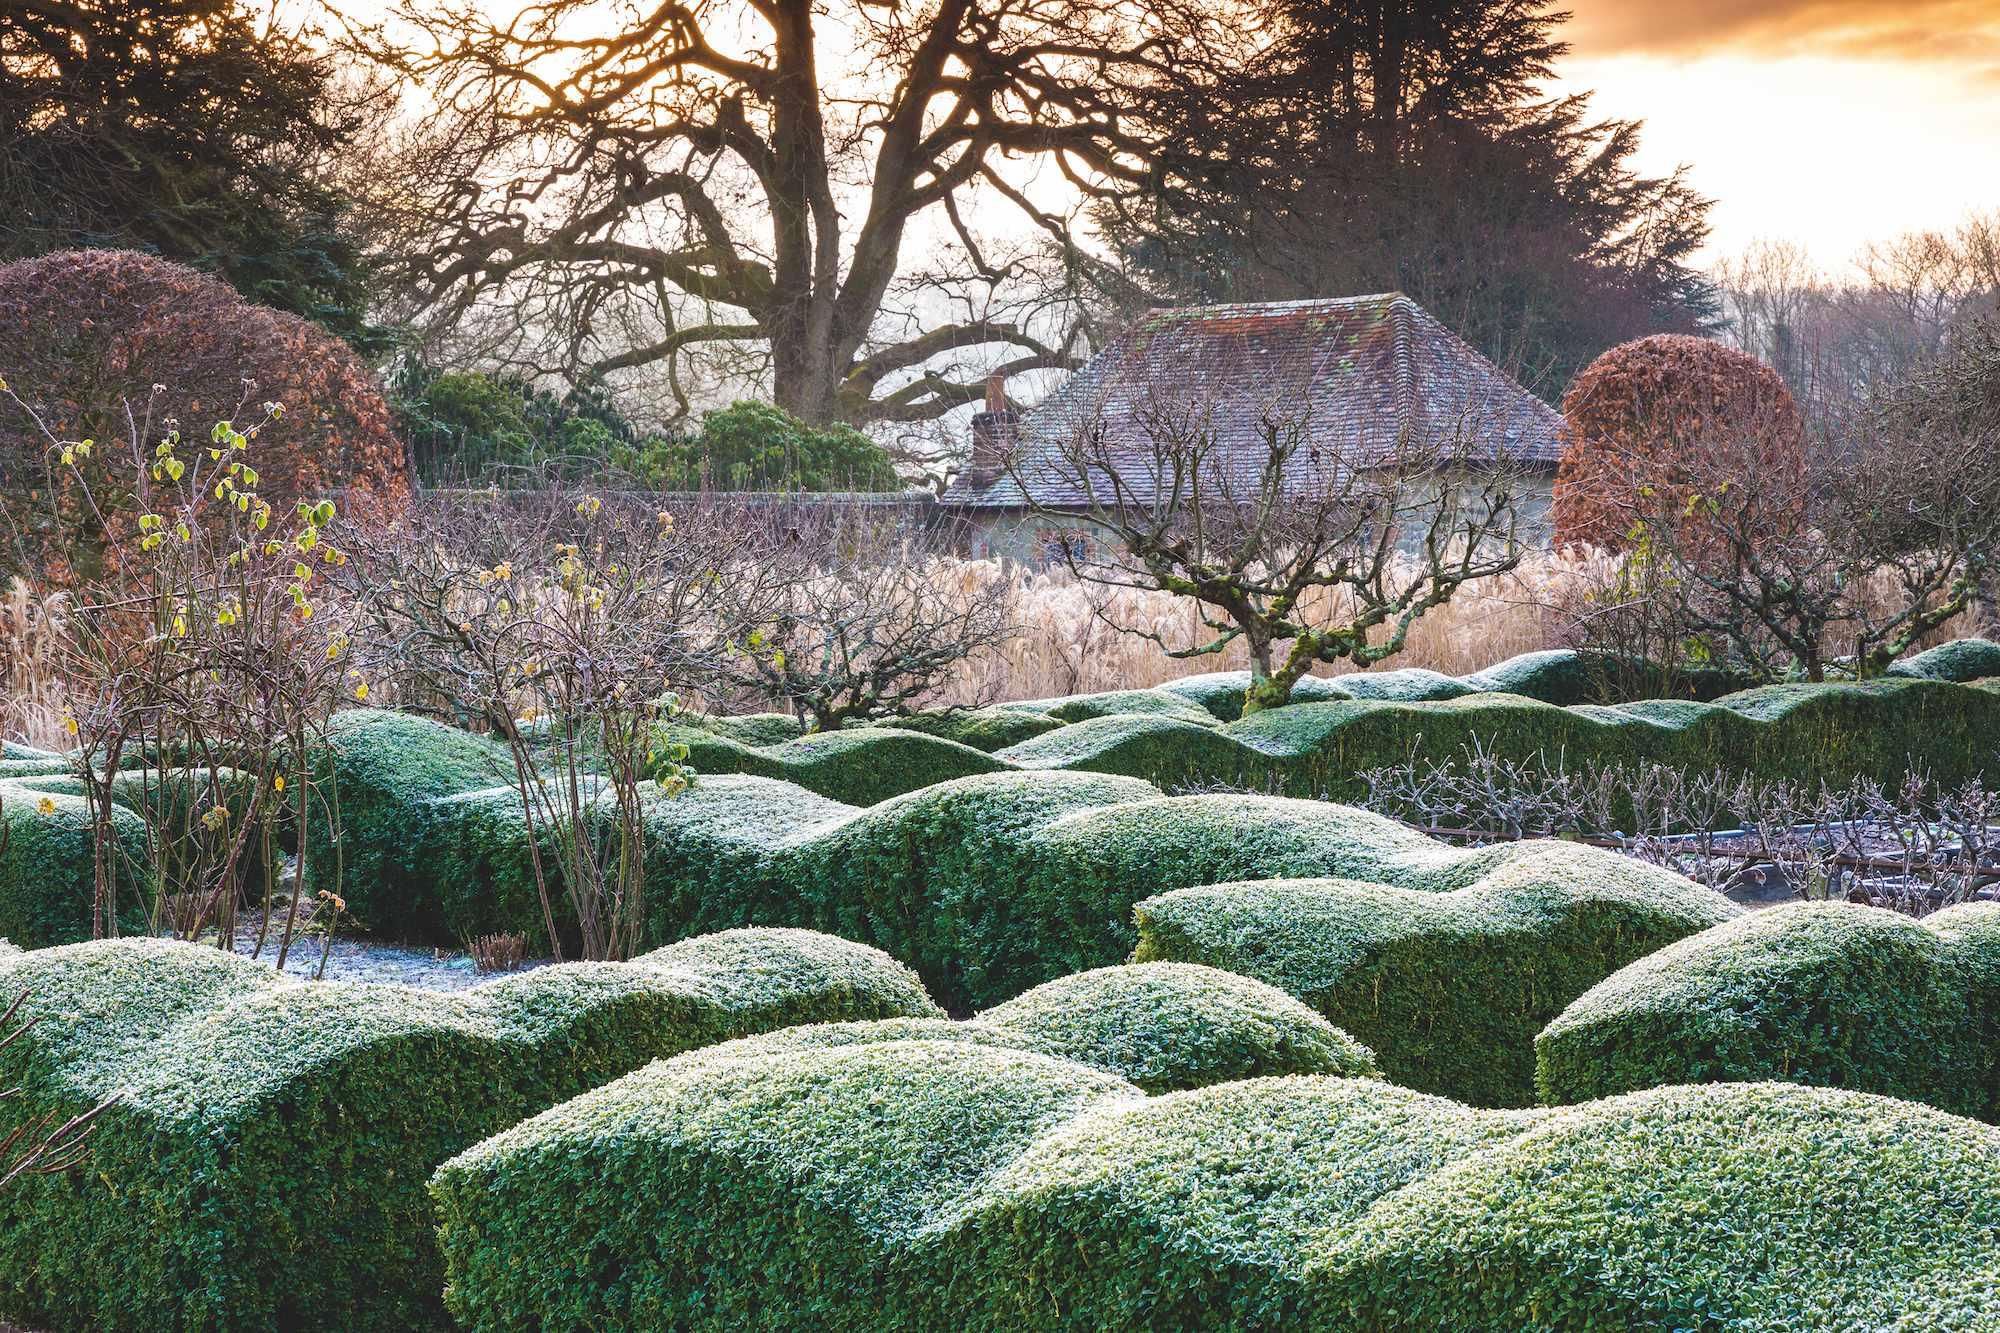 View from within the walled garden across Buxus sempervivens wave hedge with frost. Designed by Arne Maynard.